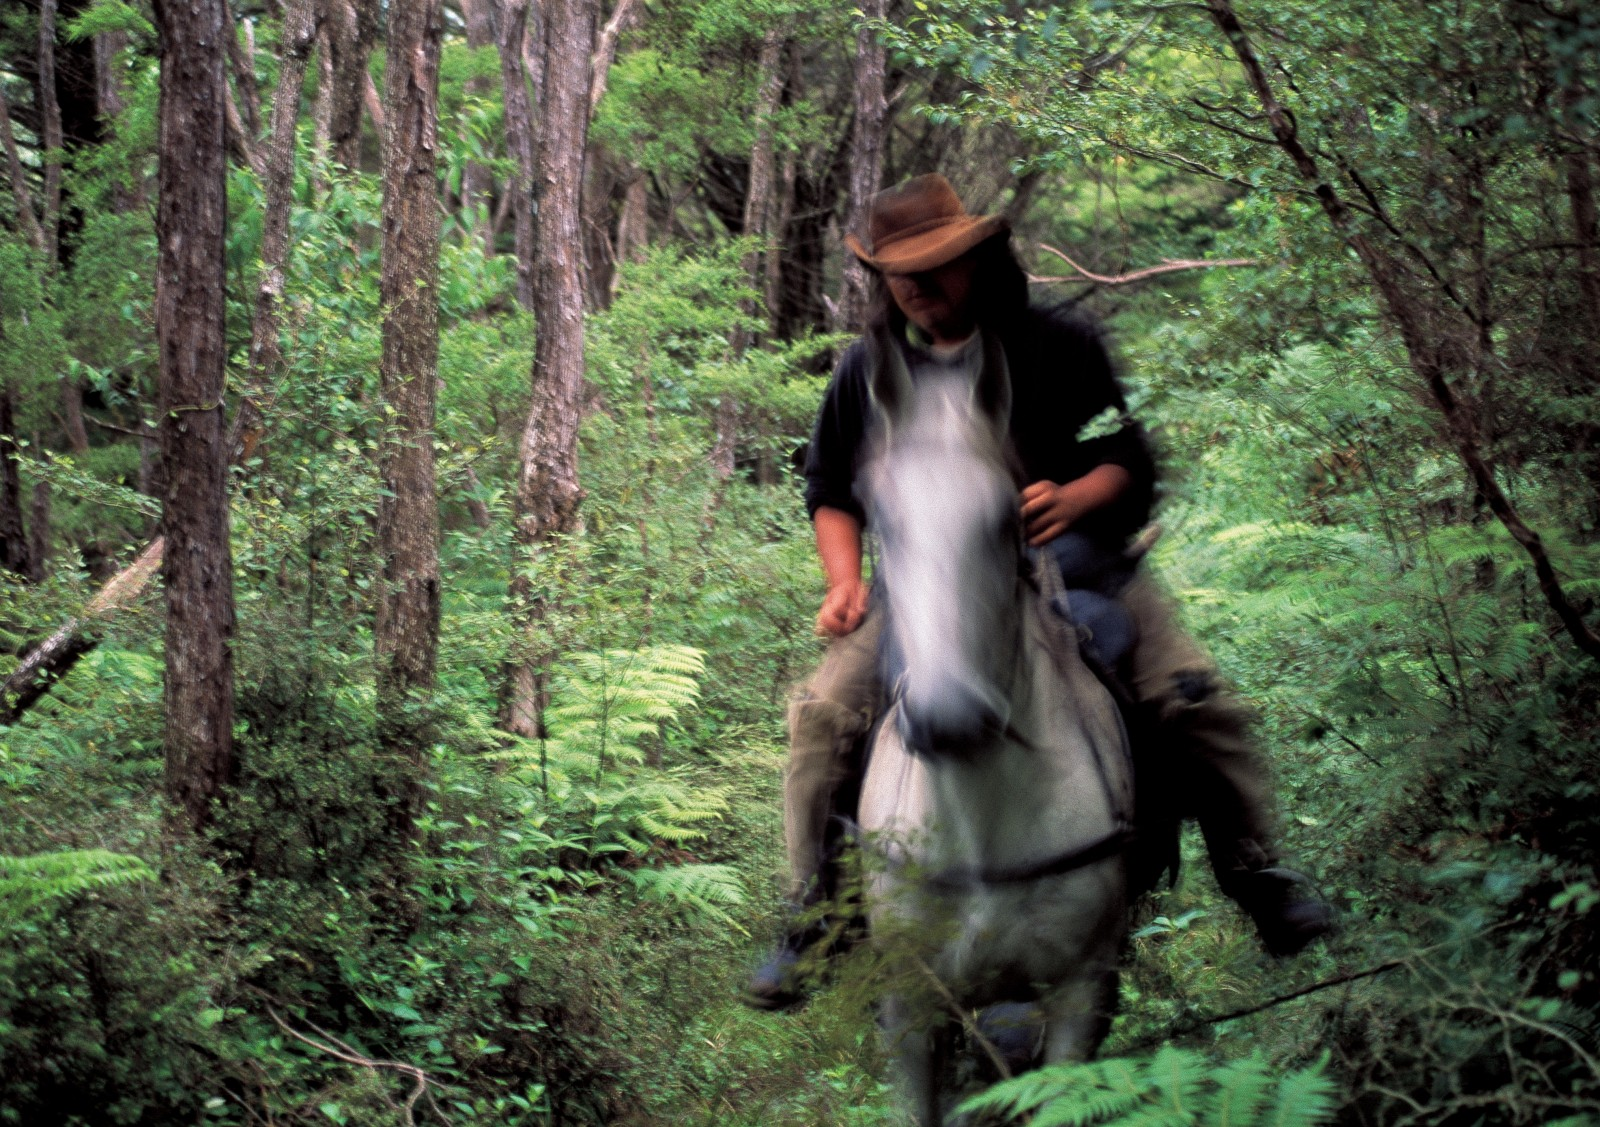 Contemporary Maori tourism enterprises deliver a multitude of experiences for visitors, from hangi to horse trekking, such as this adventure in the East Cape region near Rangitukia.